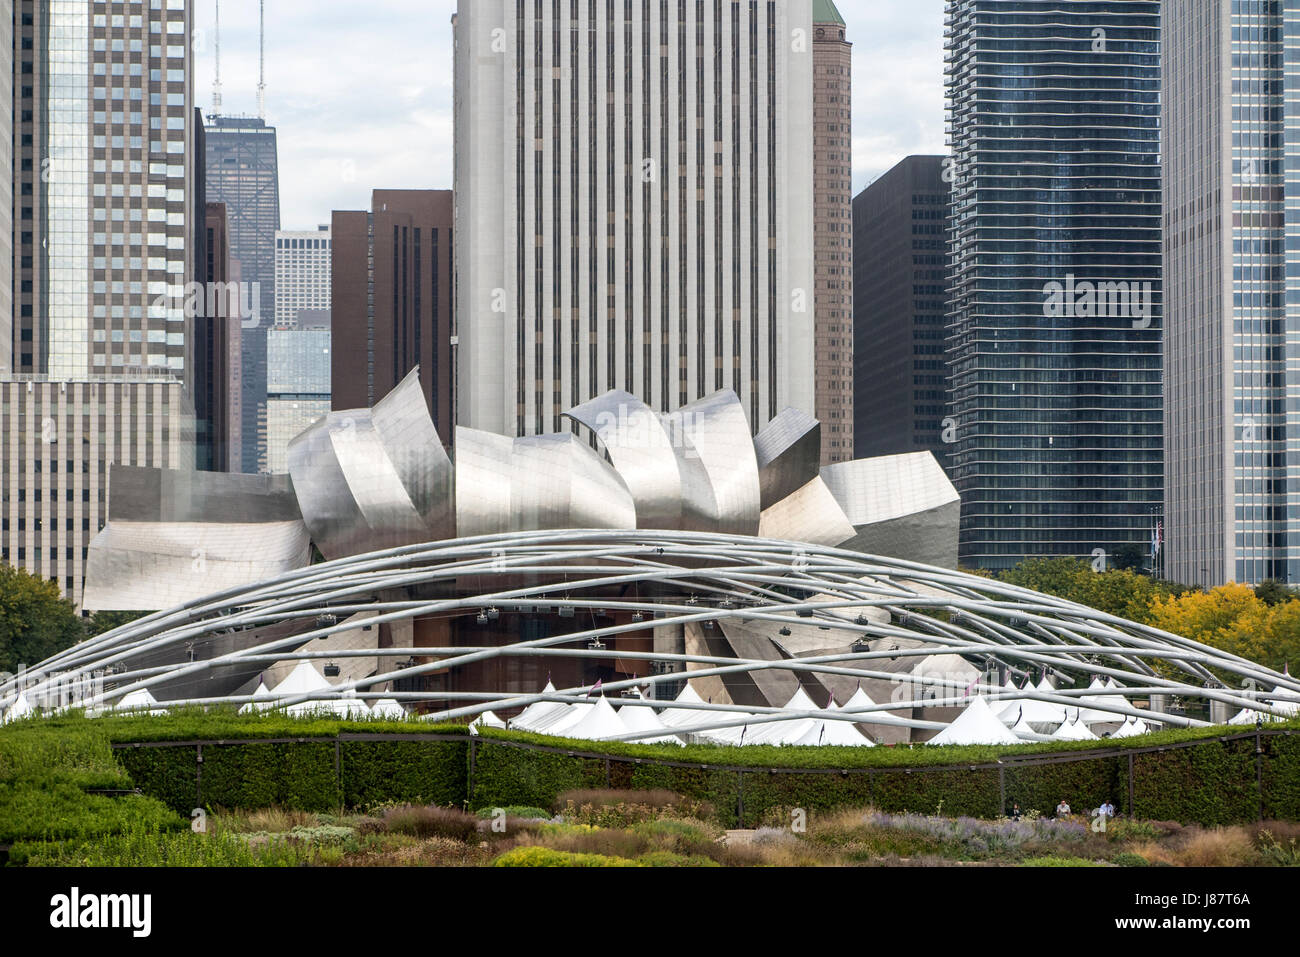 Scenic view of modern architecture and Harris Auditorium Chicago USA - Stock Image